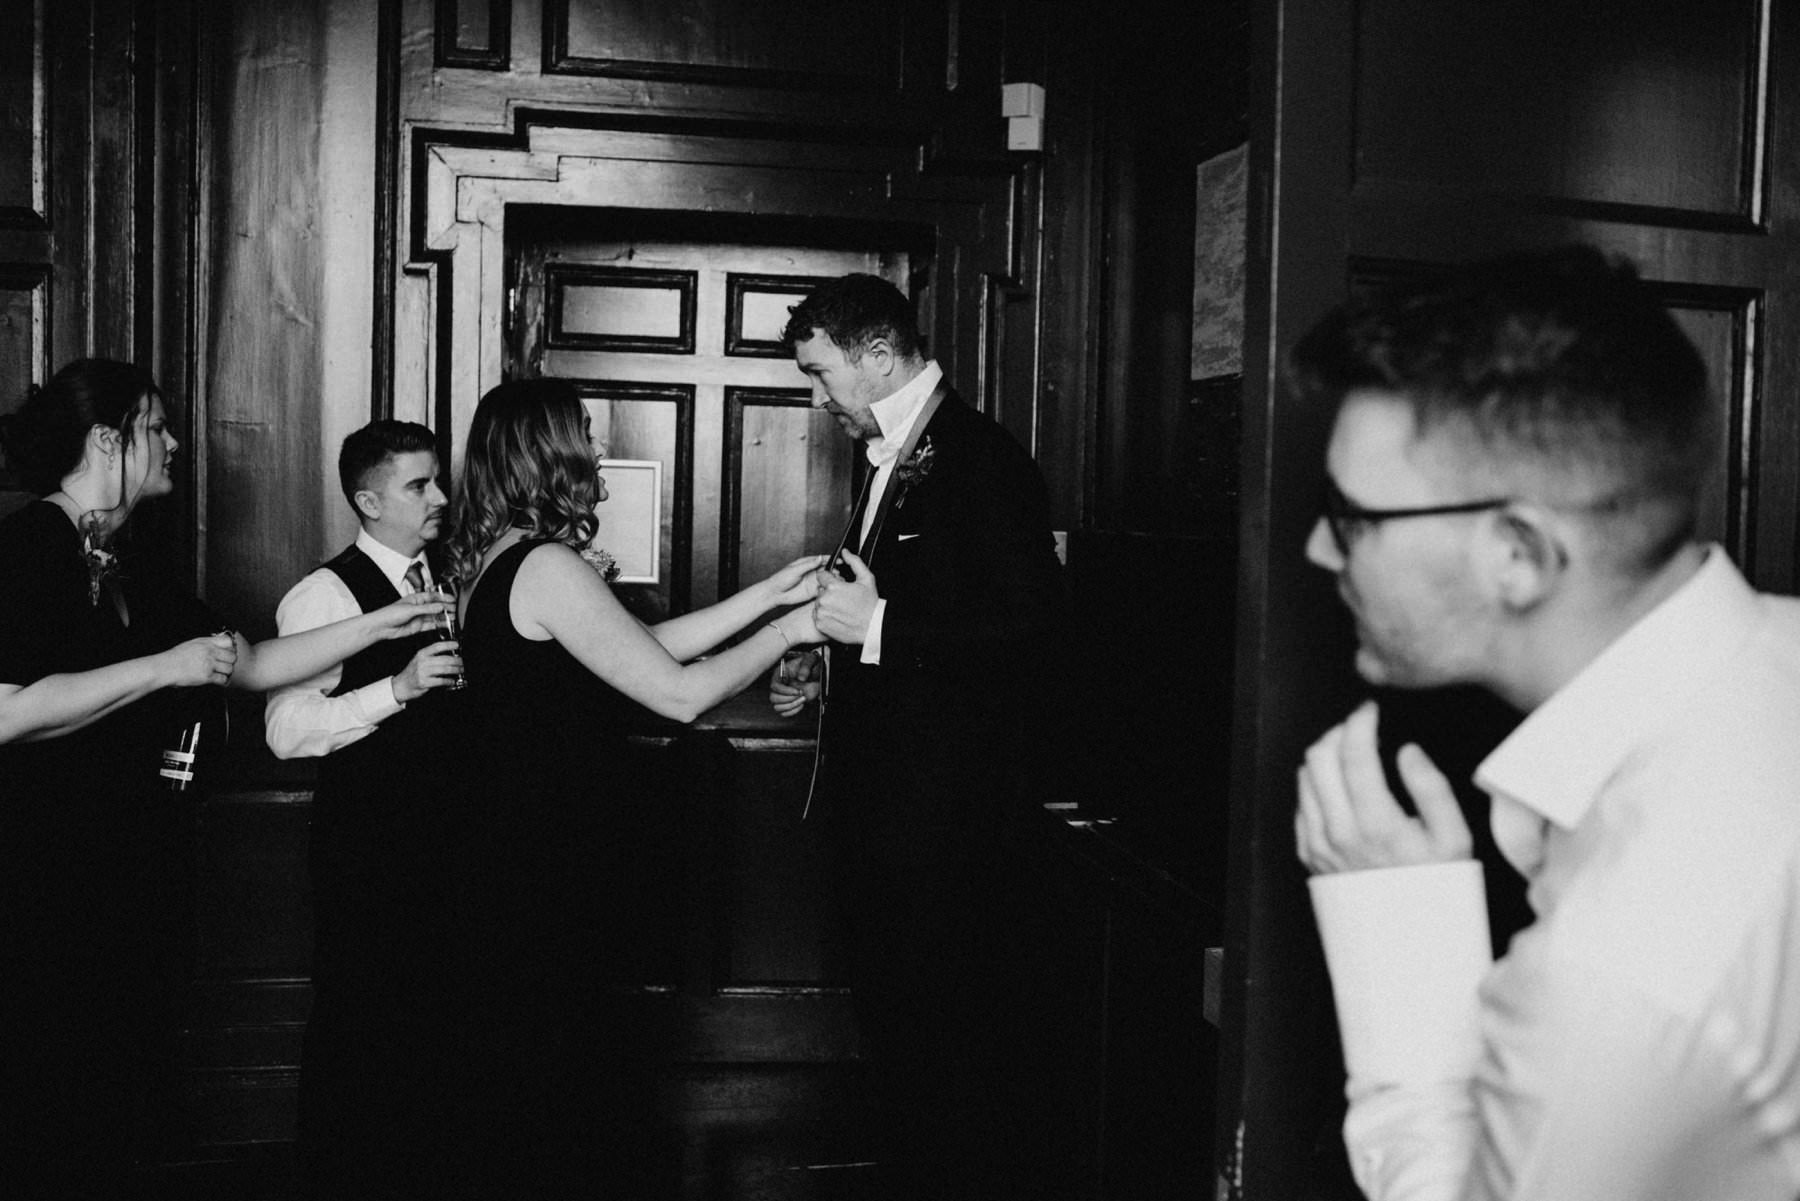 Groom hides from friends in a candid moment of wedding